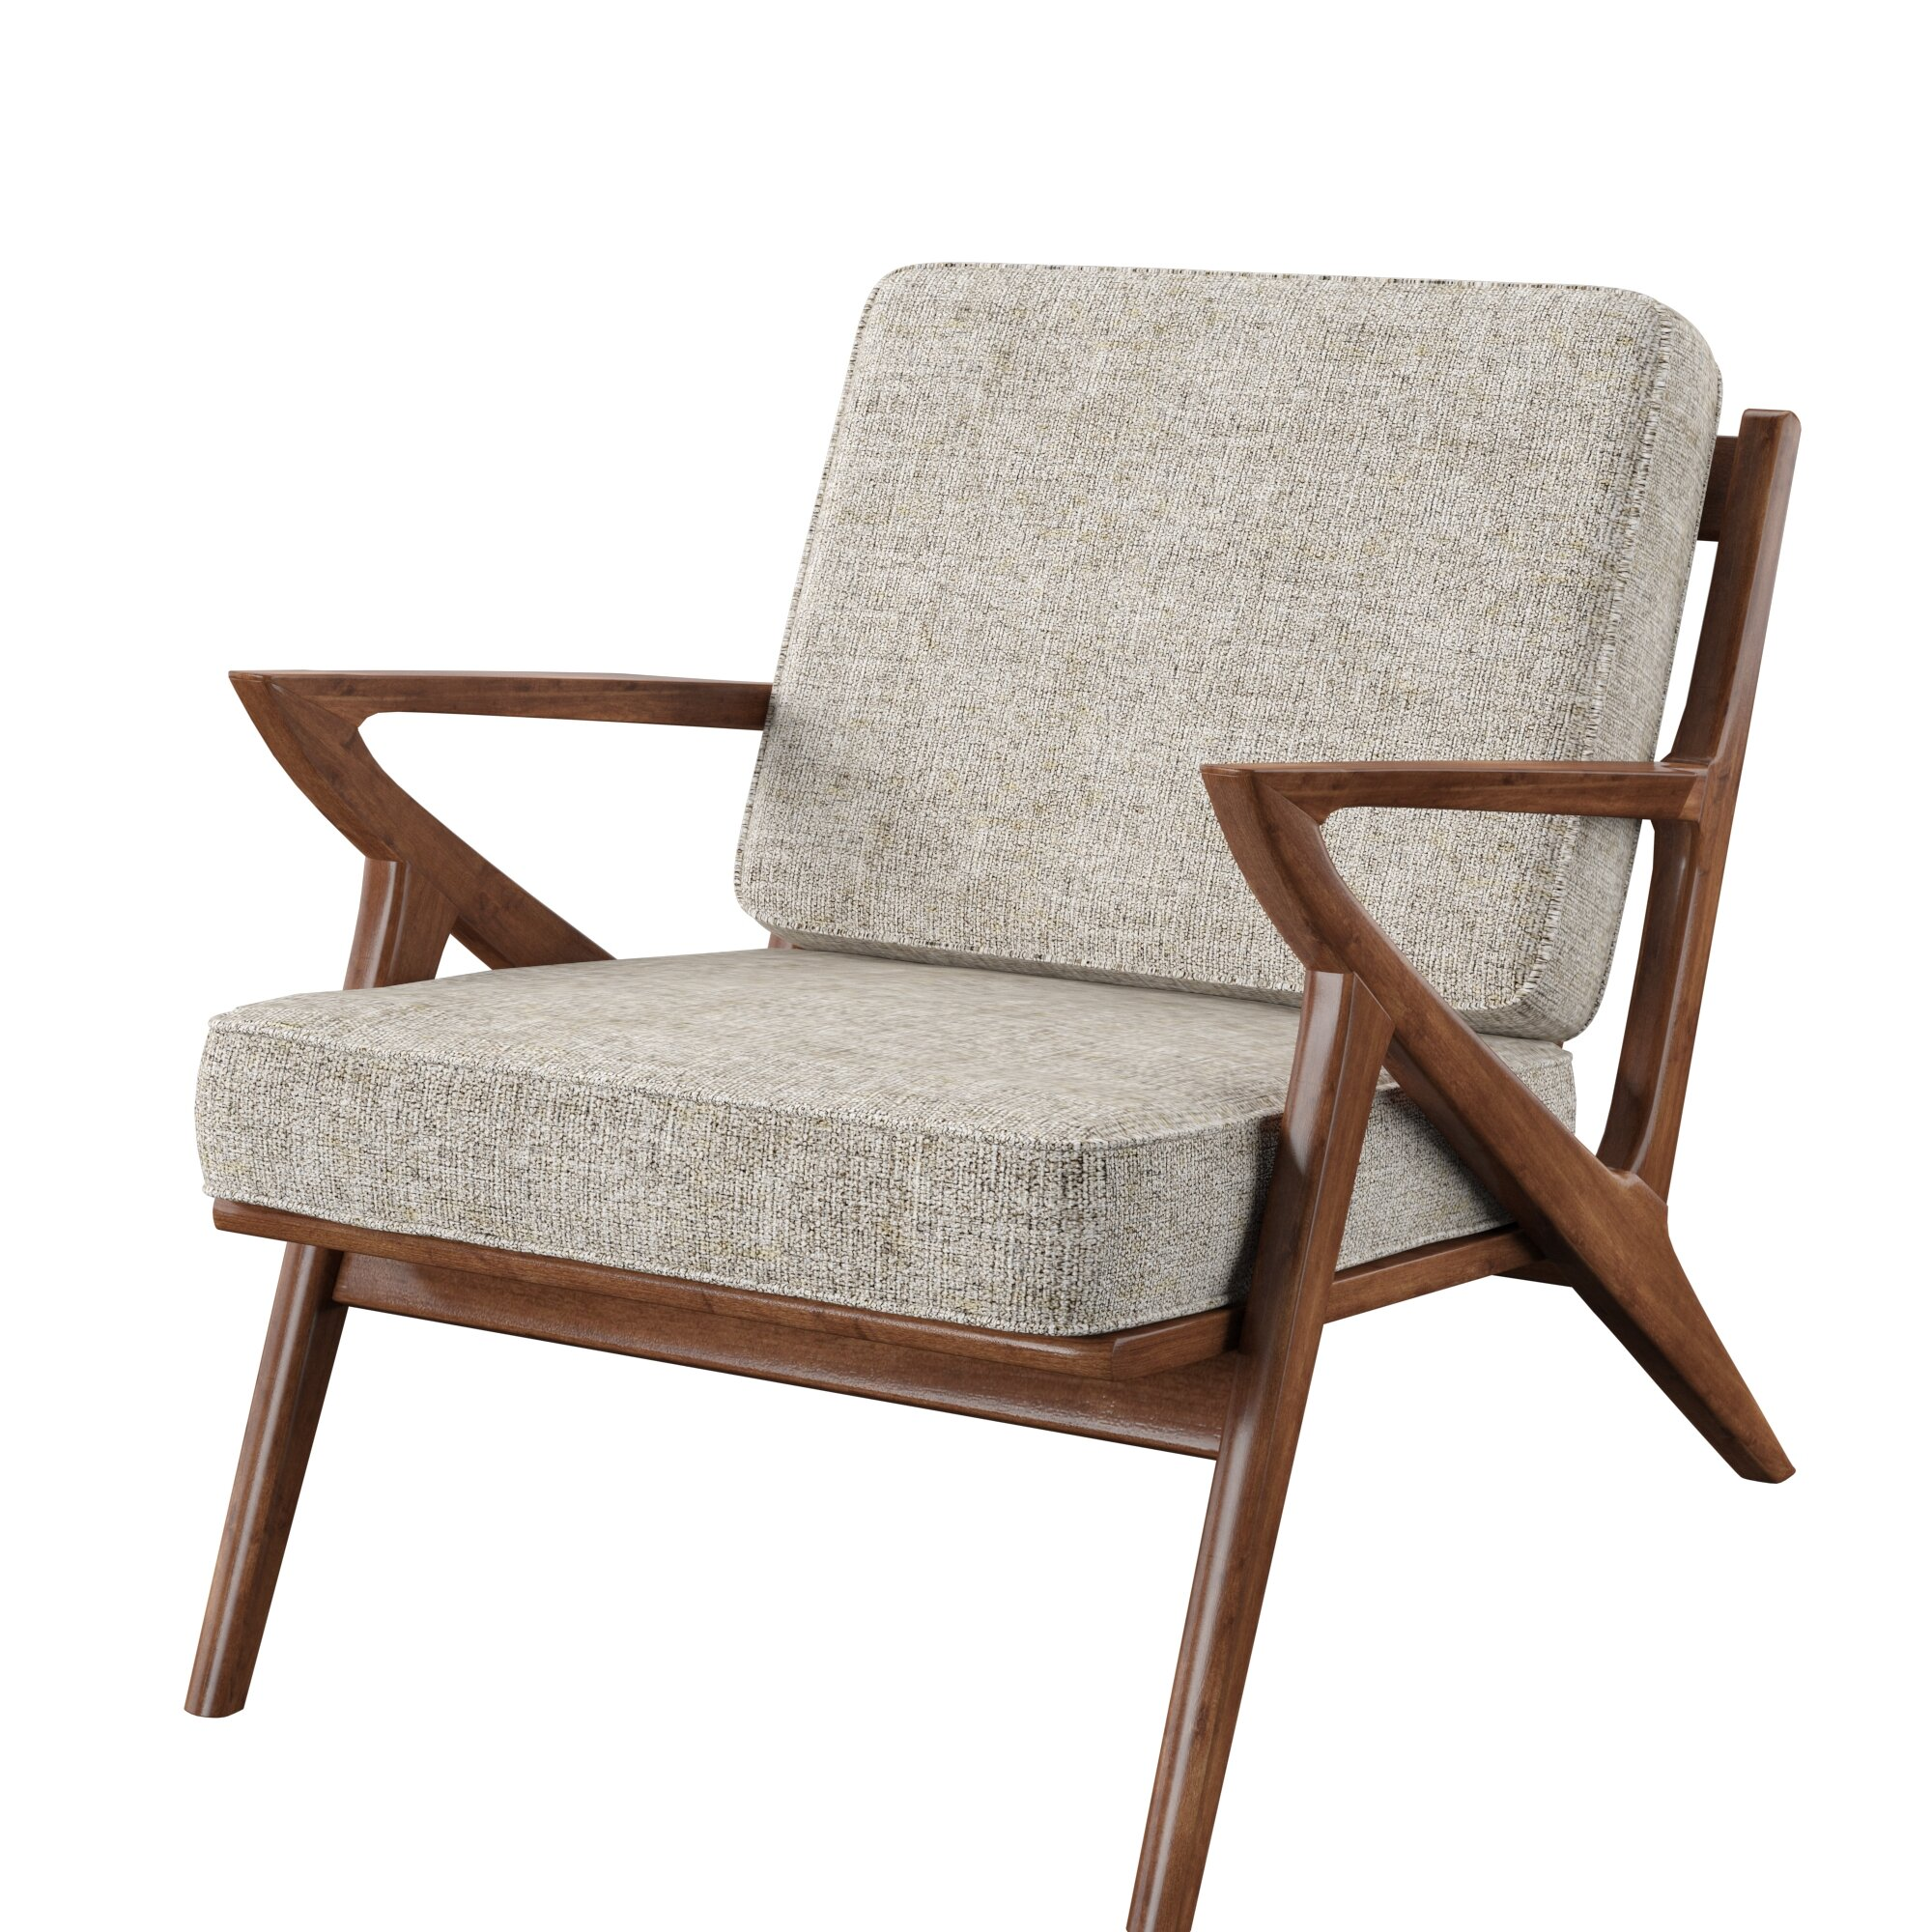 Super Mcfaddin Armchair Pdpeps Interior Chair Design Pdpepsorg